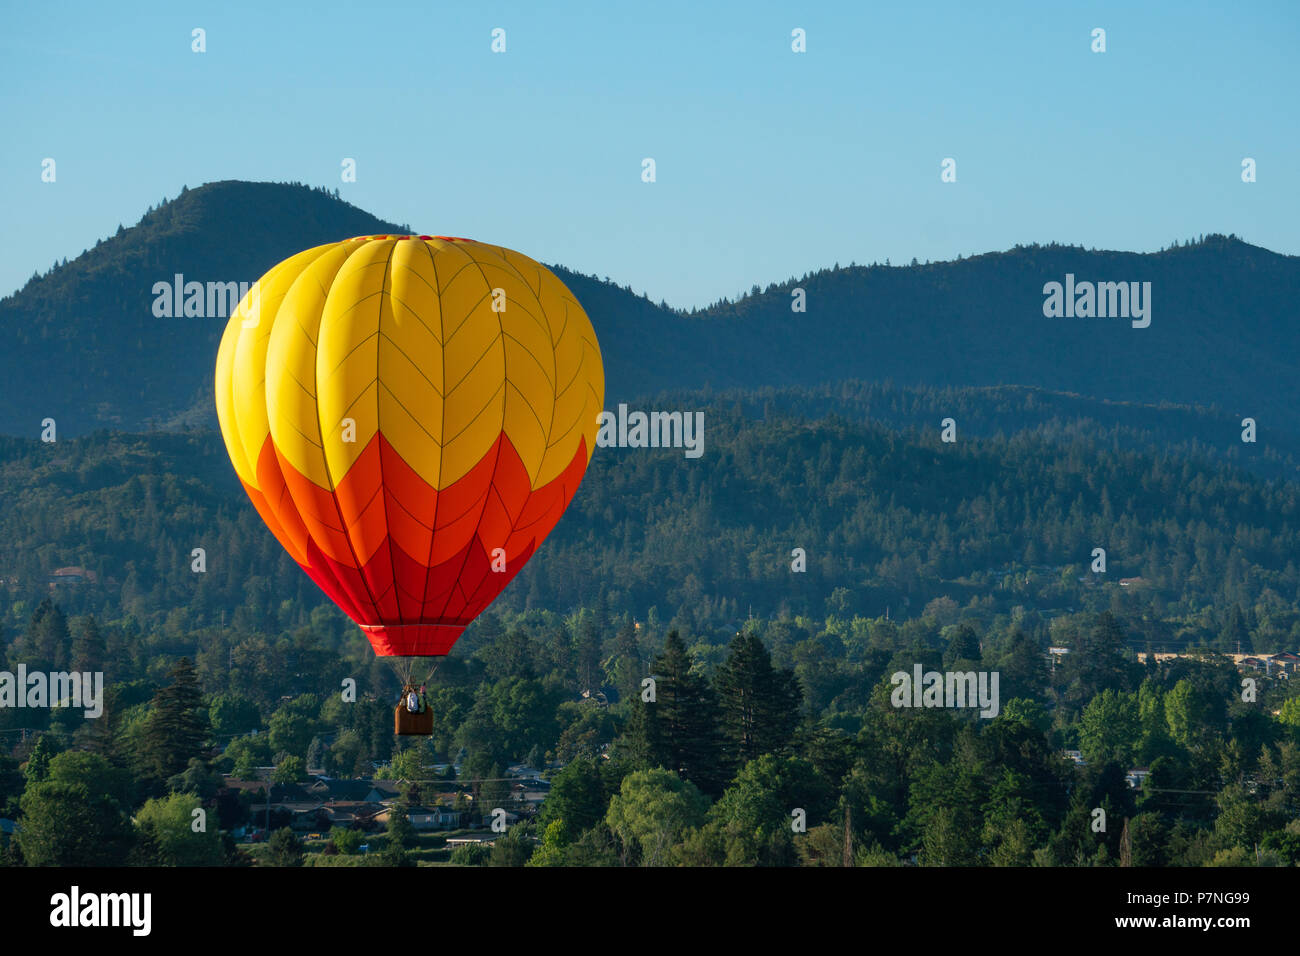 Hot Air Balloons Soaring Over Fields And Mountains During The Balloon Kite Festival In Grants Pass Oregon